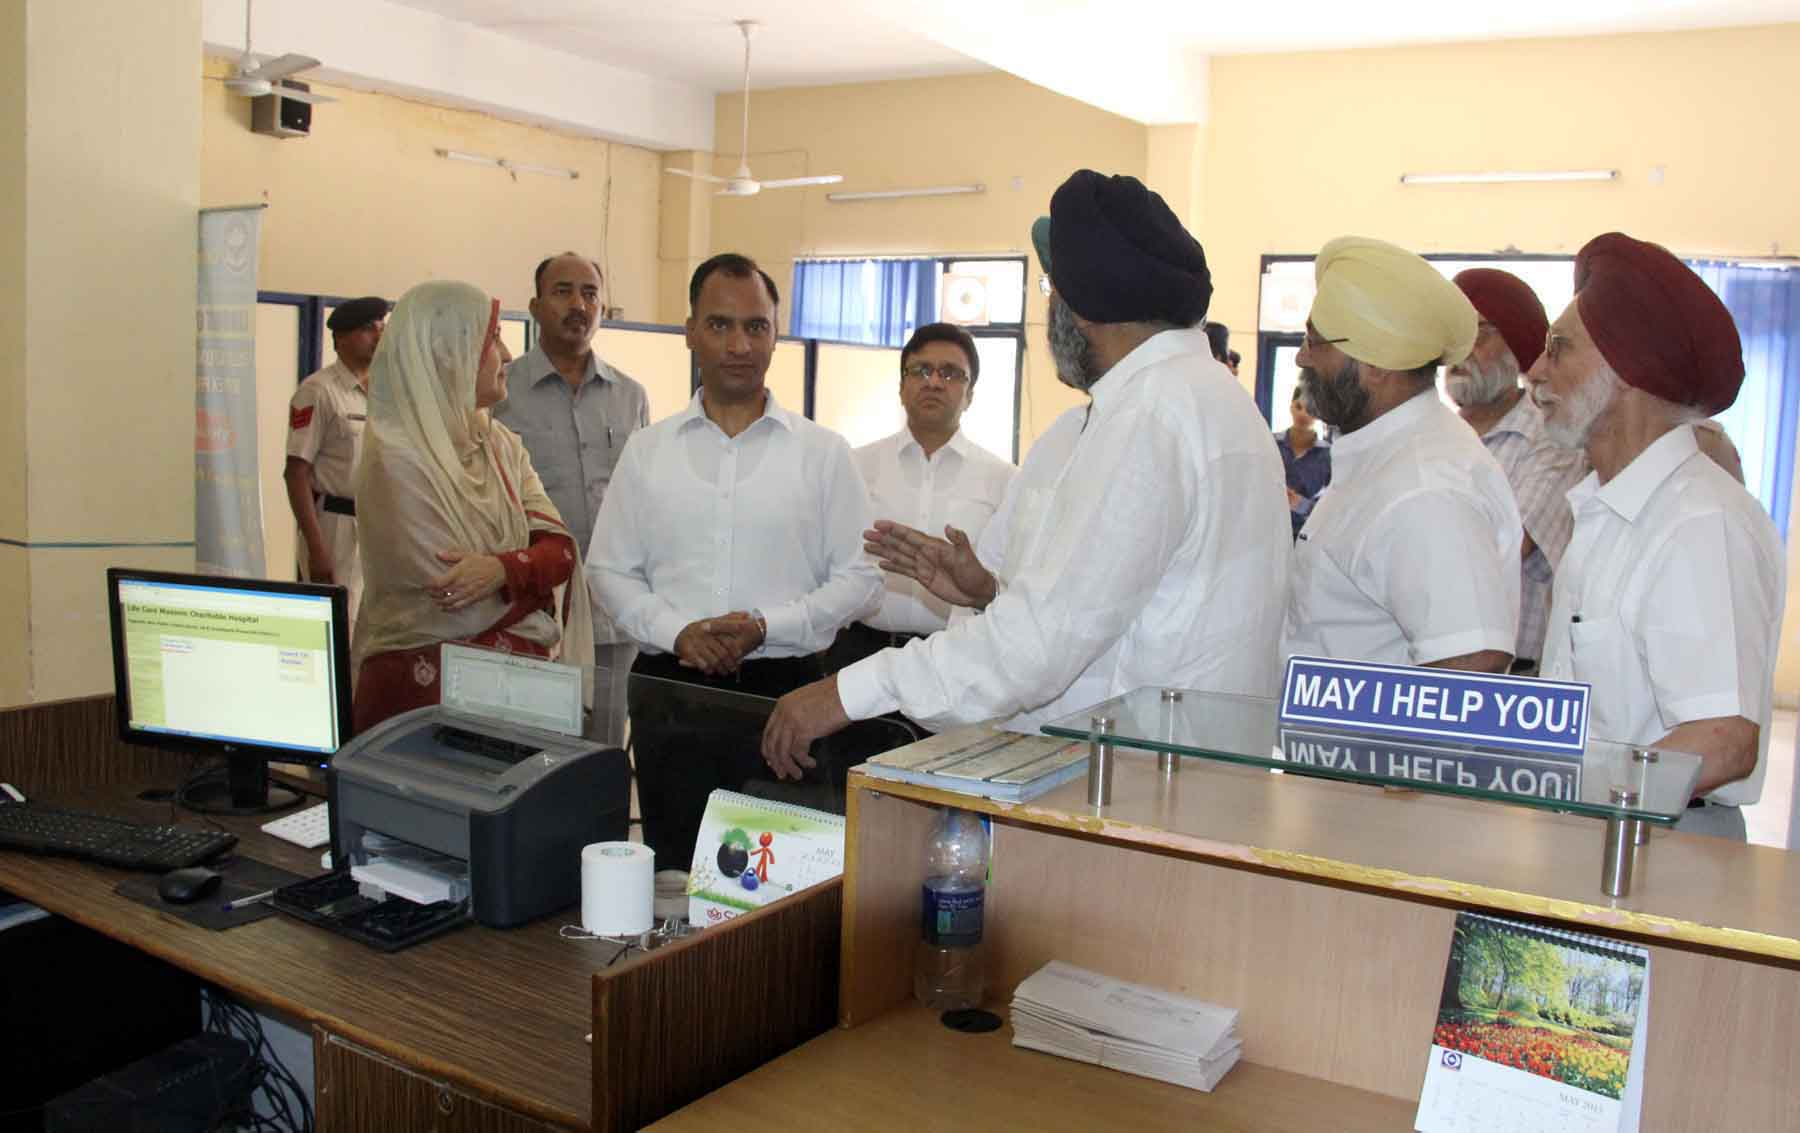 The Adviser to the Administrator, UT, Chandigarh, Mr. Vijay Dev alongwith senior officers visiting at Life Care Masonic Charitable Hospital, Sector-18, Chandigarh on Wednesday, May 27, 2015.